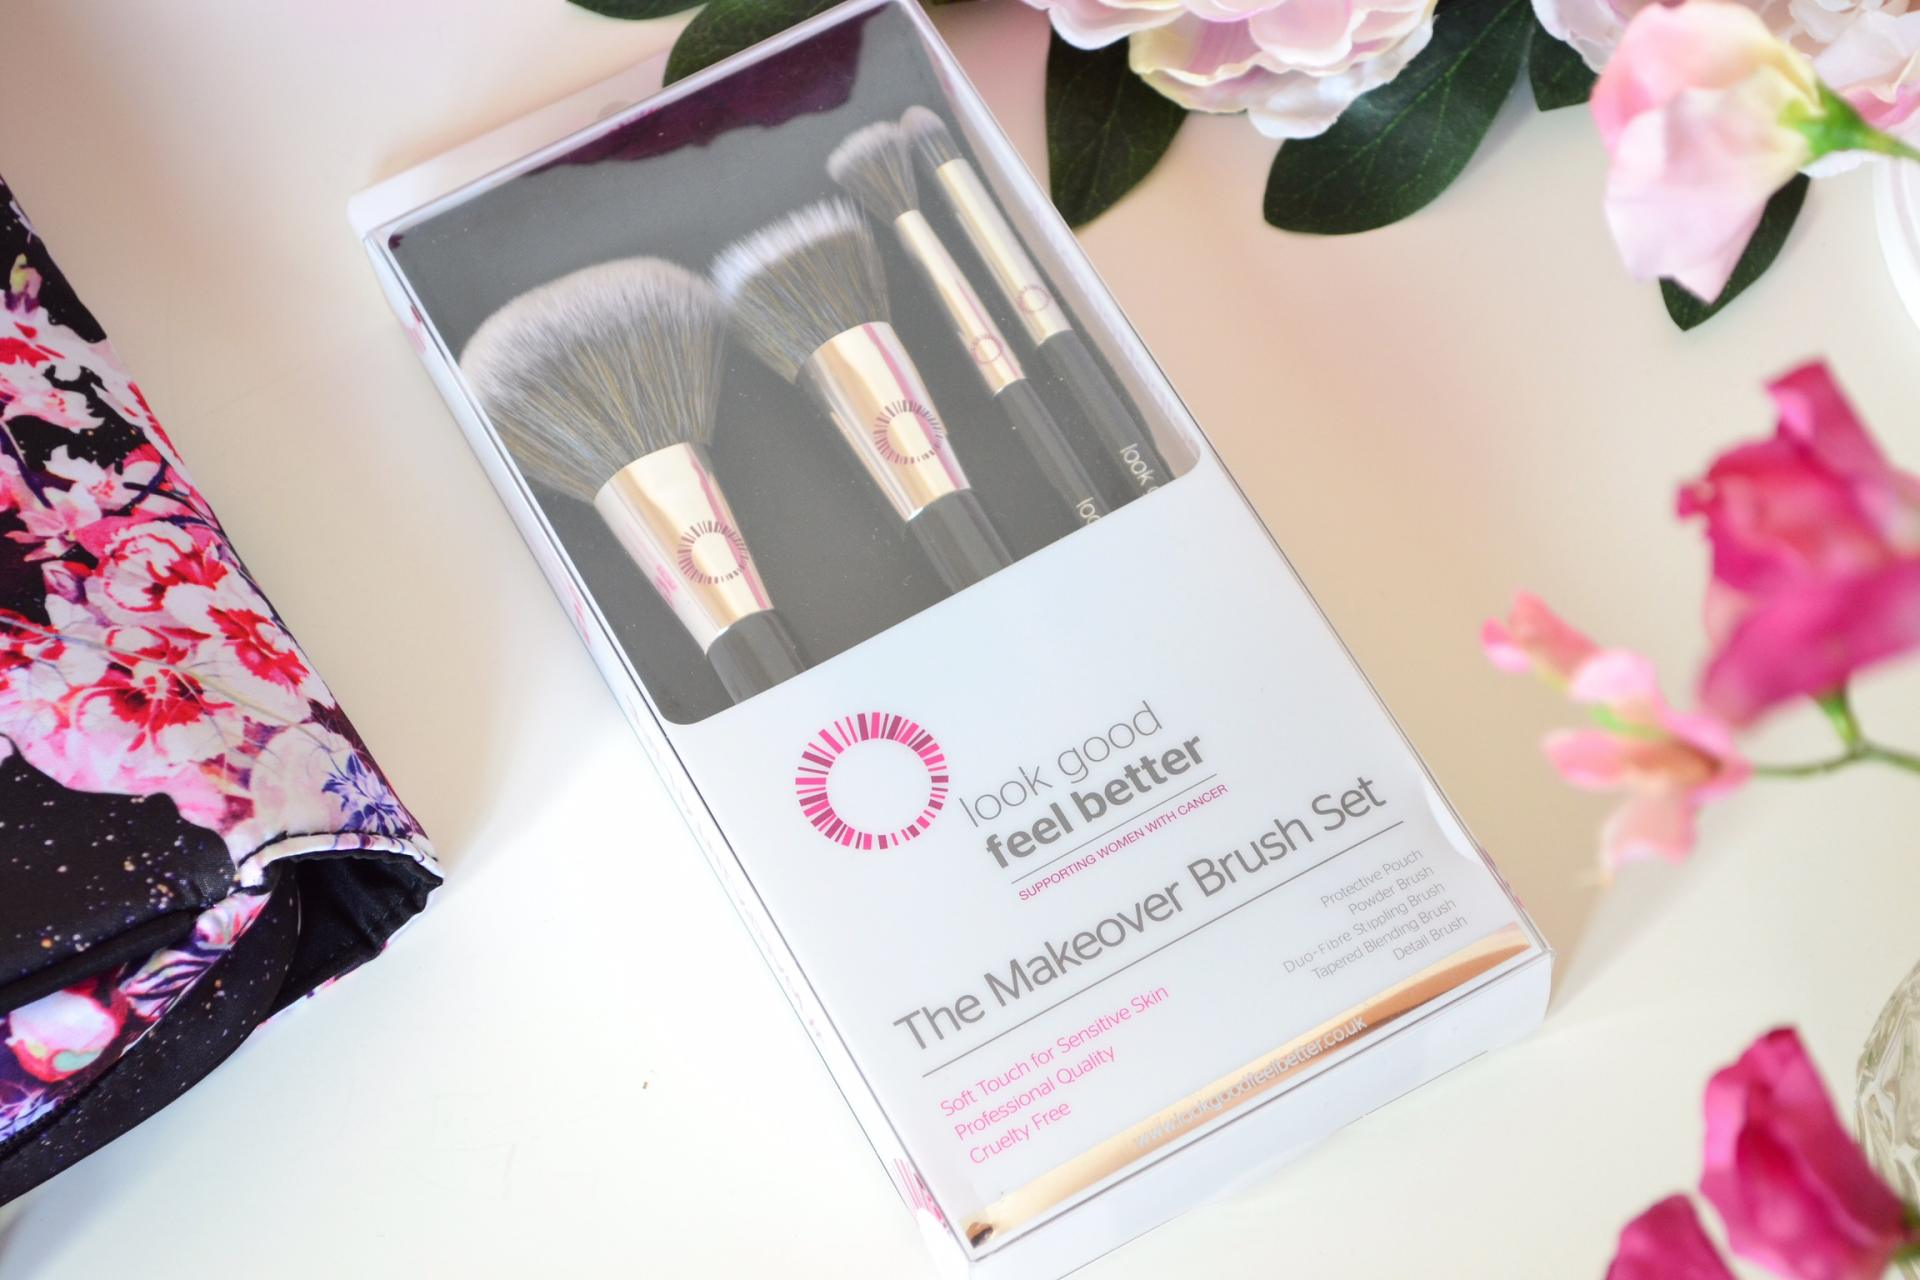 look-good-feel-better-make-up-brush-set